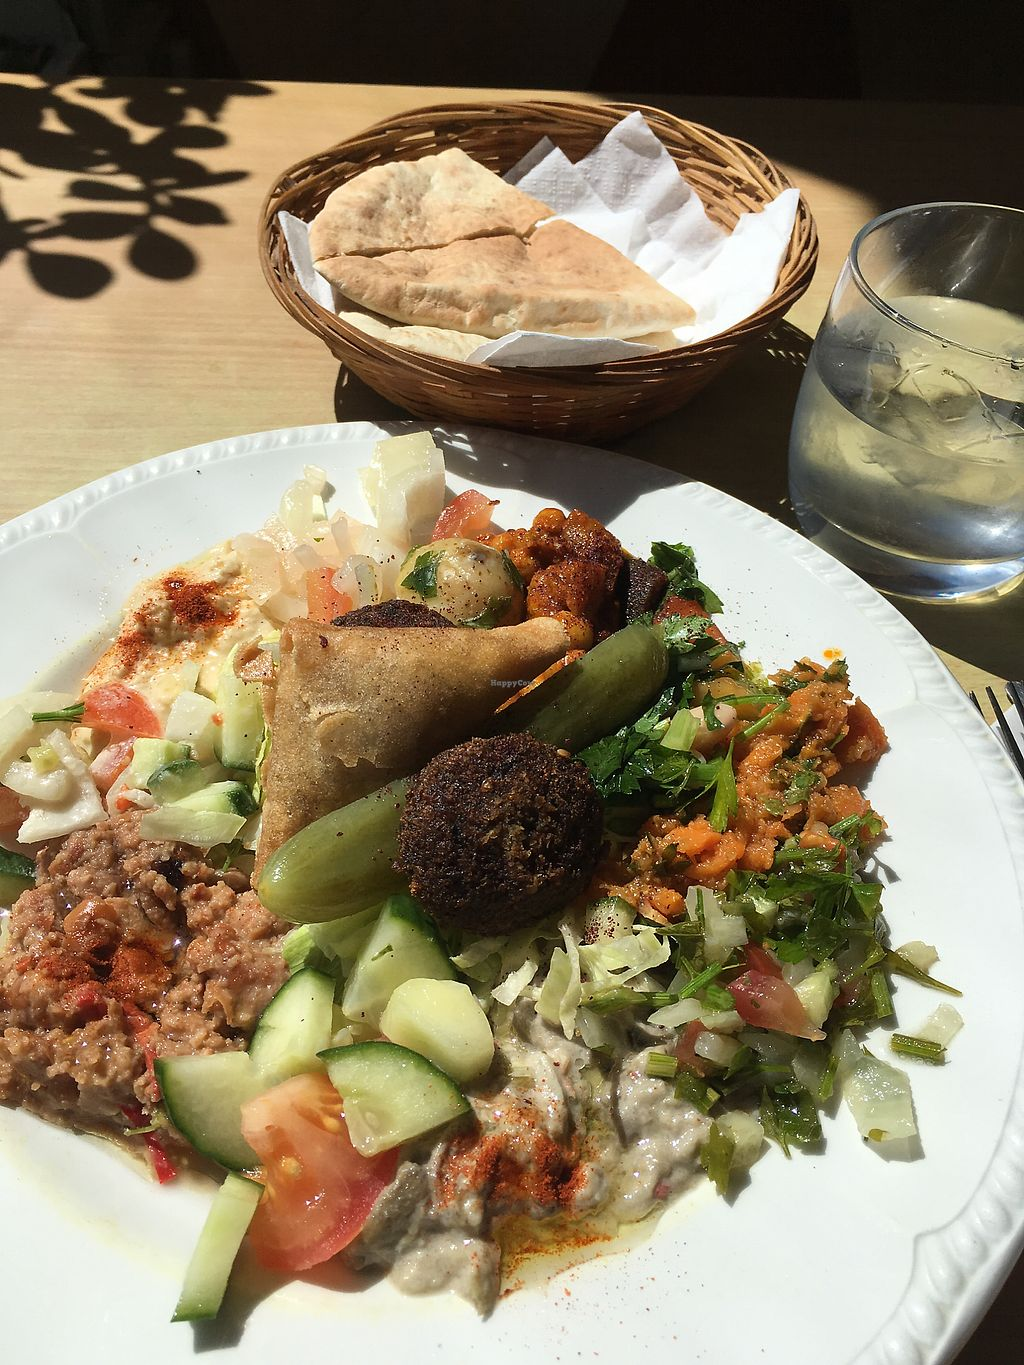 """Photo of New Horizon Cafe  by <a href=""""/members/profile/Kwarmoth"""">Kwarmoth</a> <br/>vegan lunch with loads of delicious food  <br/> July 5, 2017  - <a href='/contact/abuse/image/31056/276855'>Report</a>"""